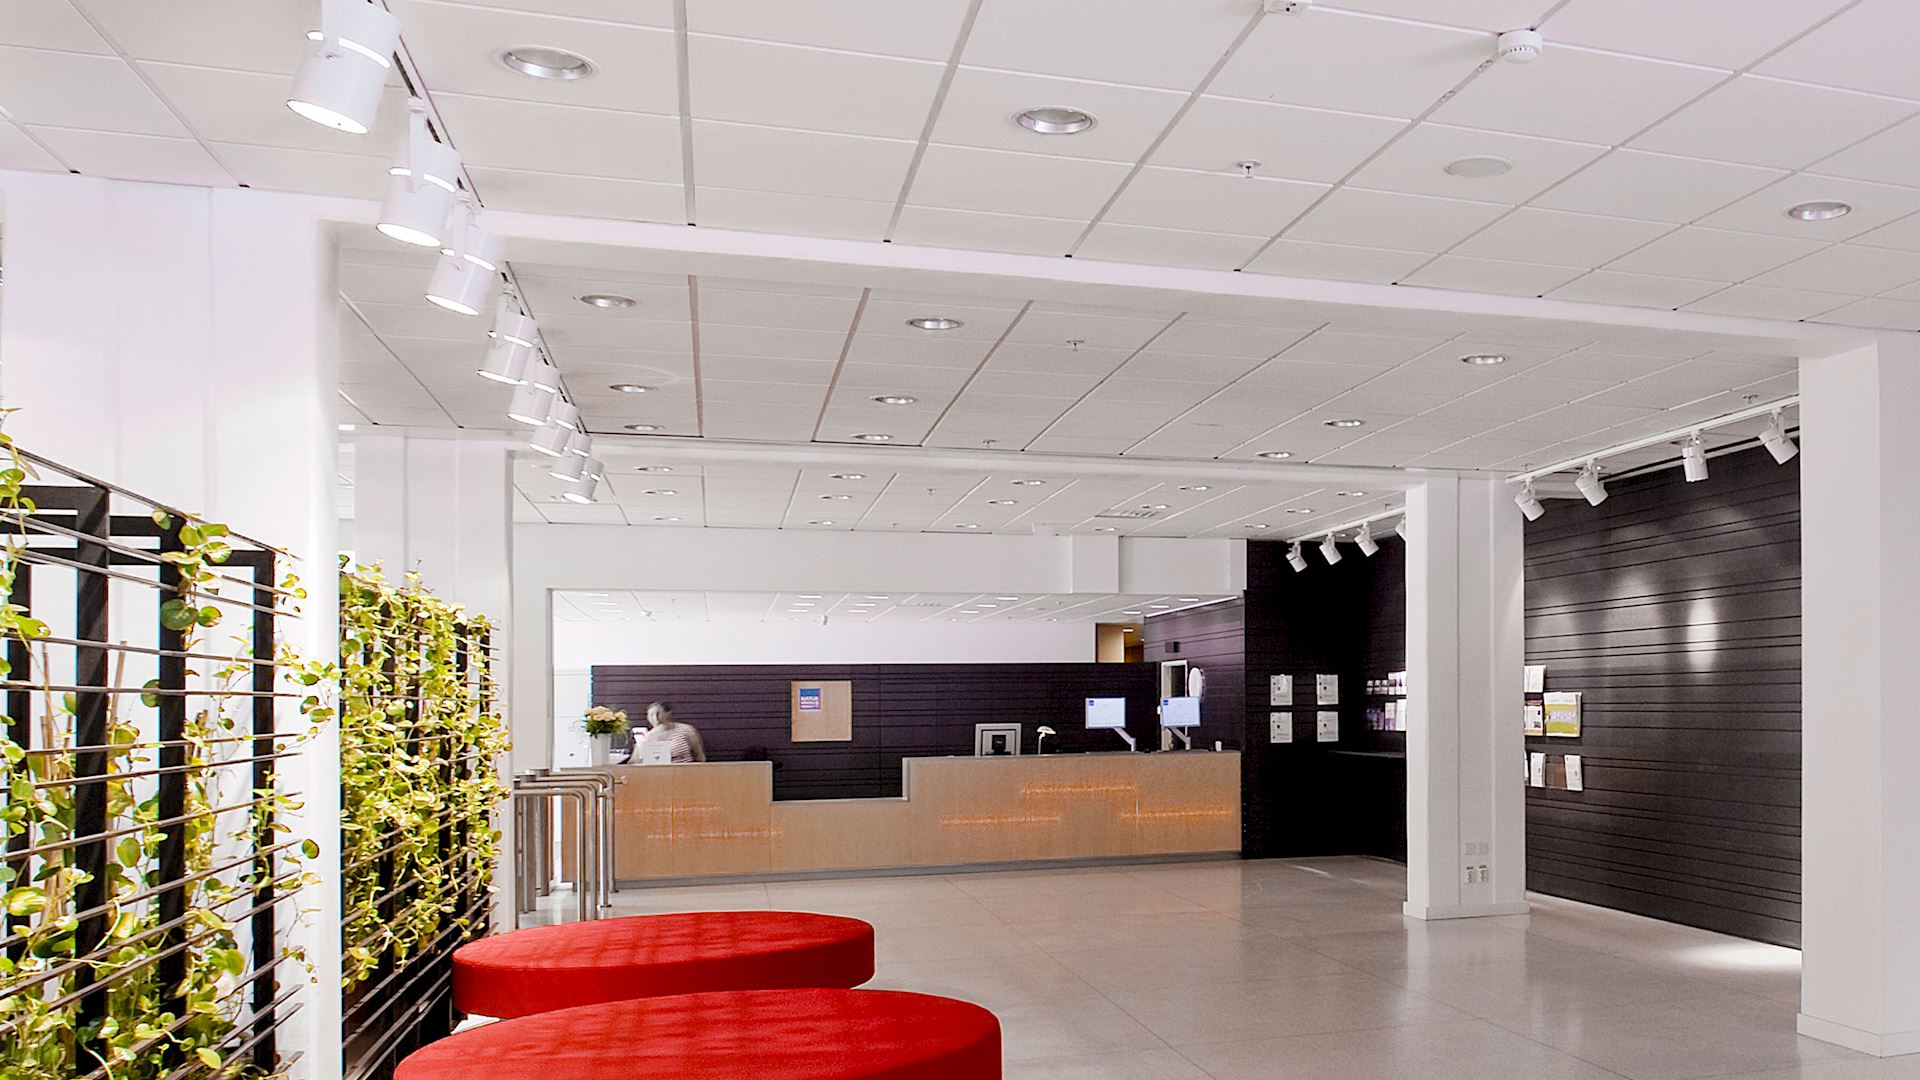 Acoustic ceiling with Rockfon Koral acoustic ceiling Tiles (Class A Sound absorption, stone wool tile)